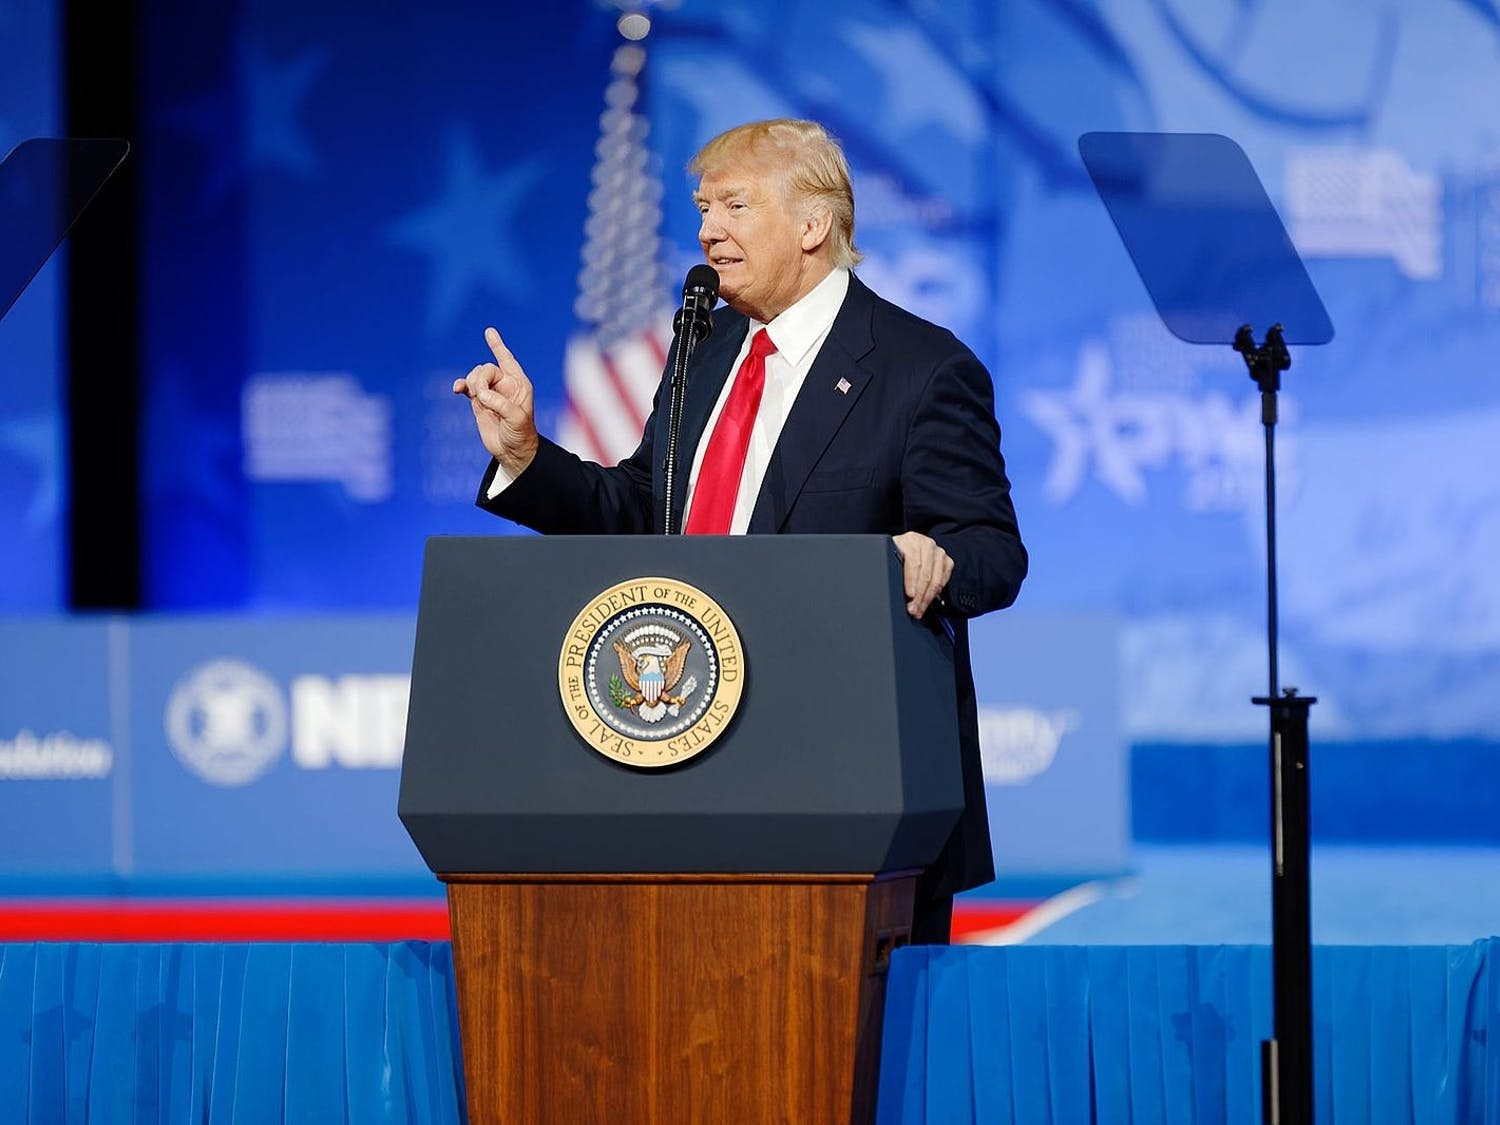 Trump's showing in the first presidential debate only added to his extensive record of name-calling and othering.